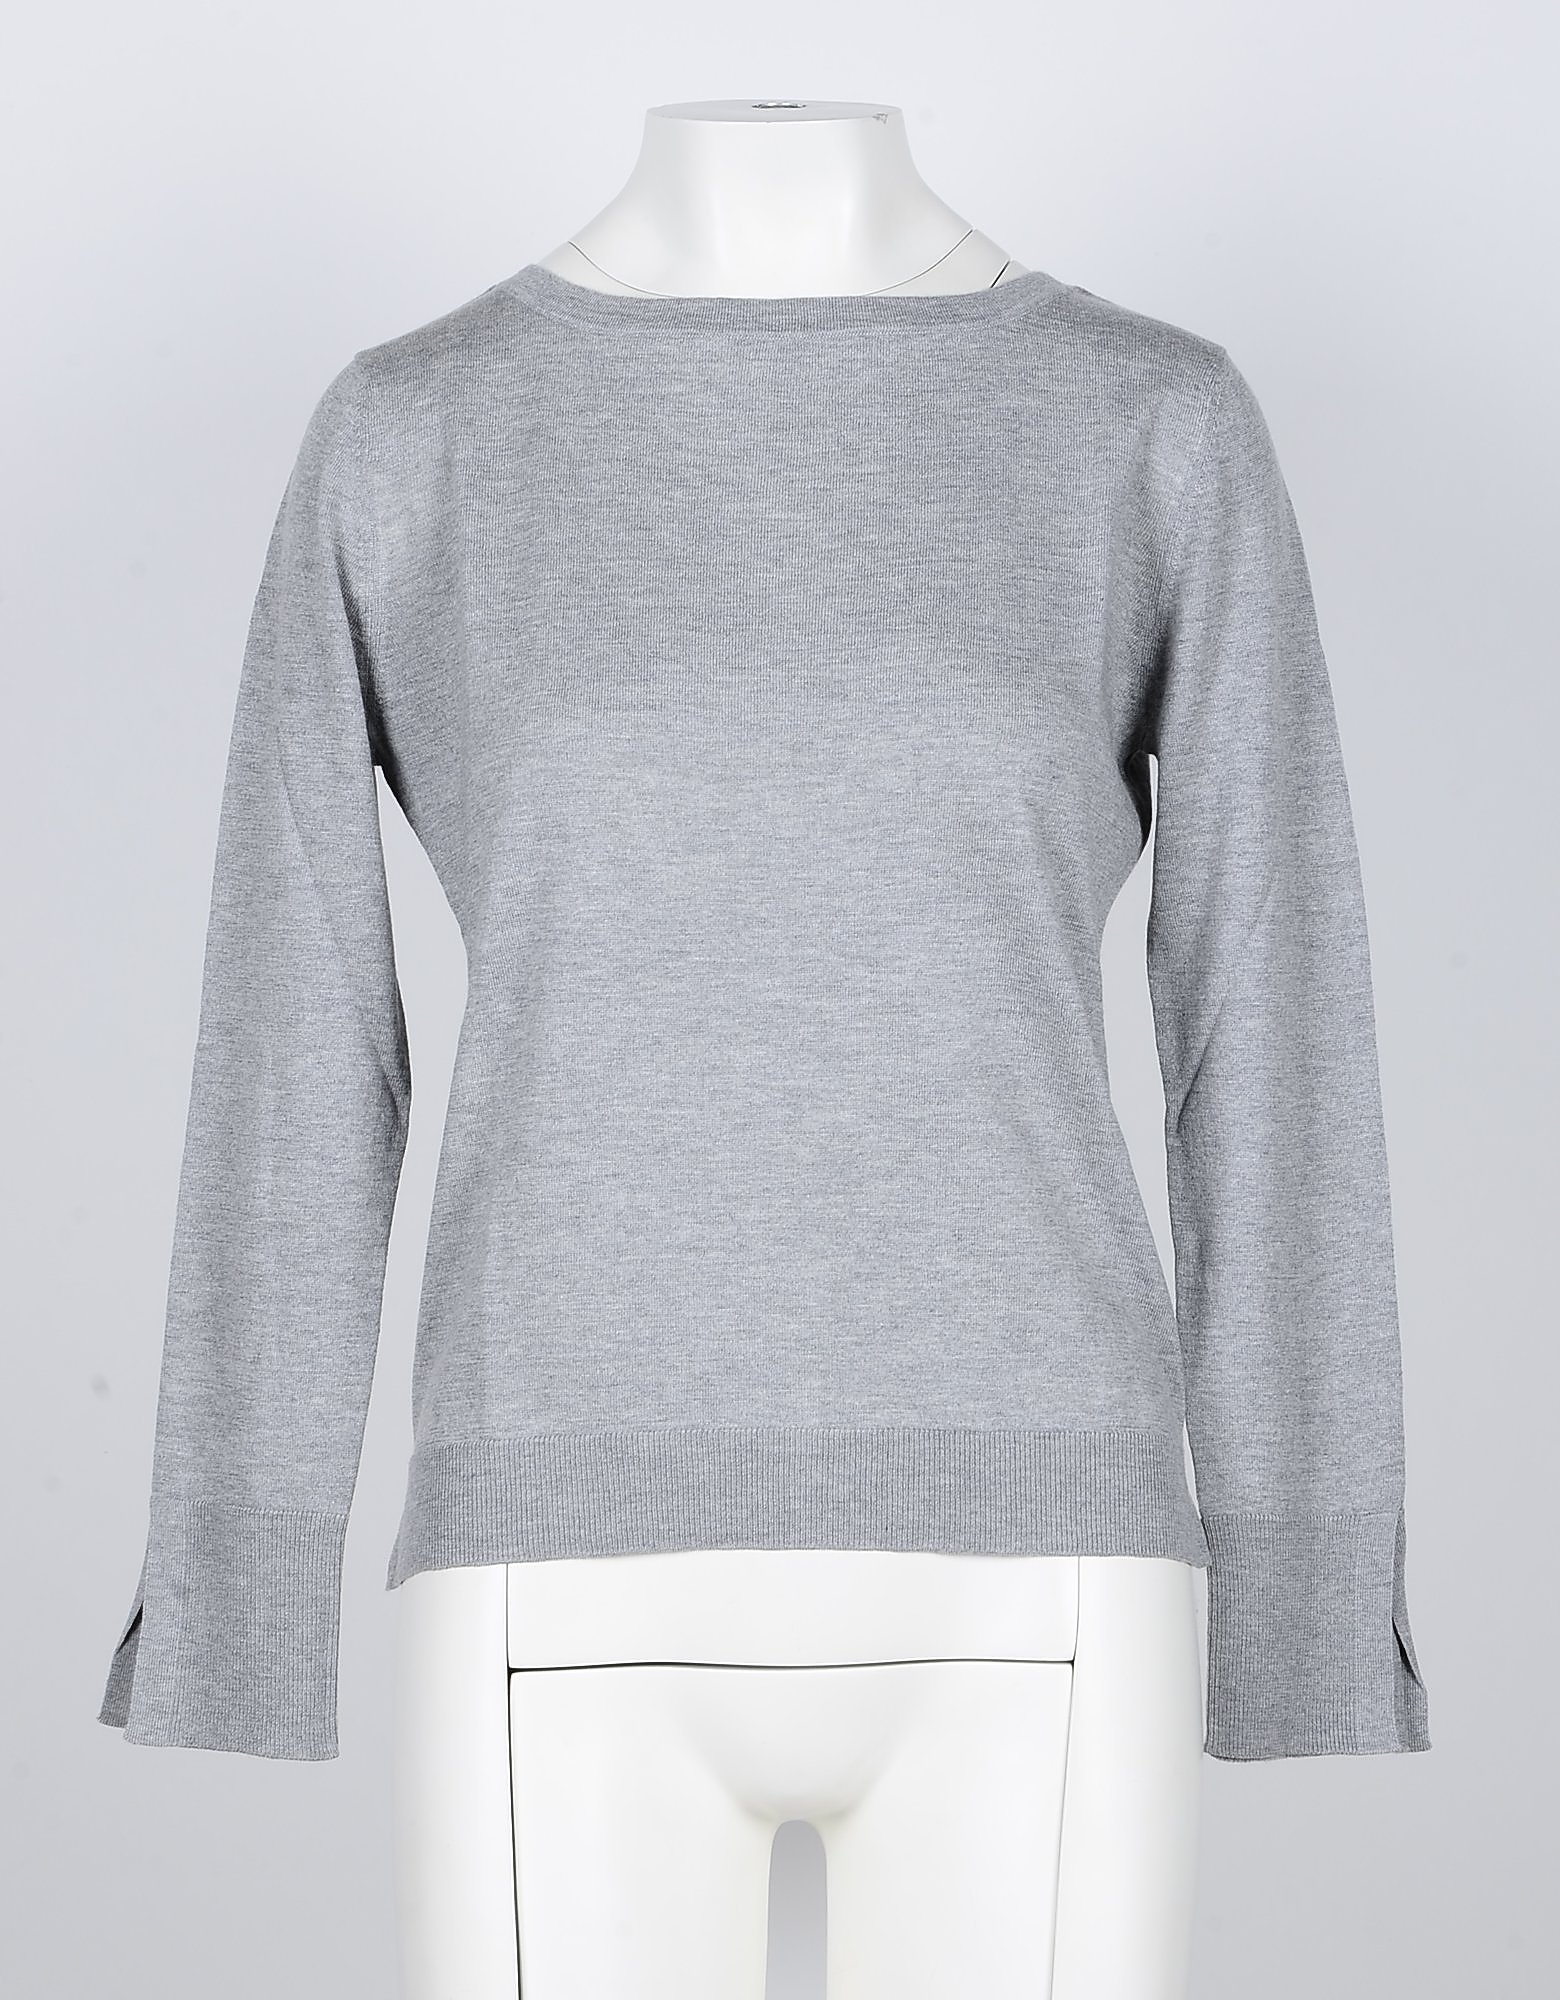 SNOBBY SHEEP Designer Knitwear, Light Gray Silk/Cashmere Blend Women's Sweater